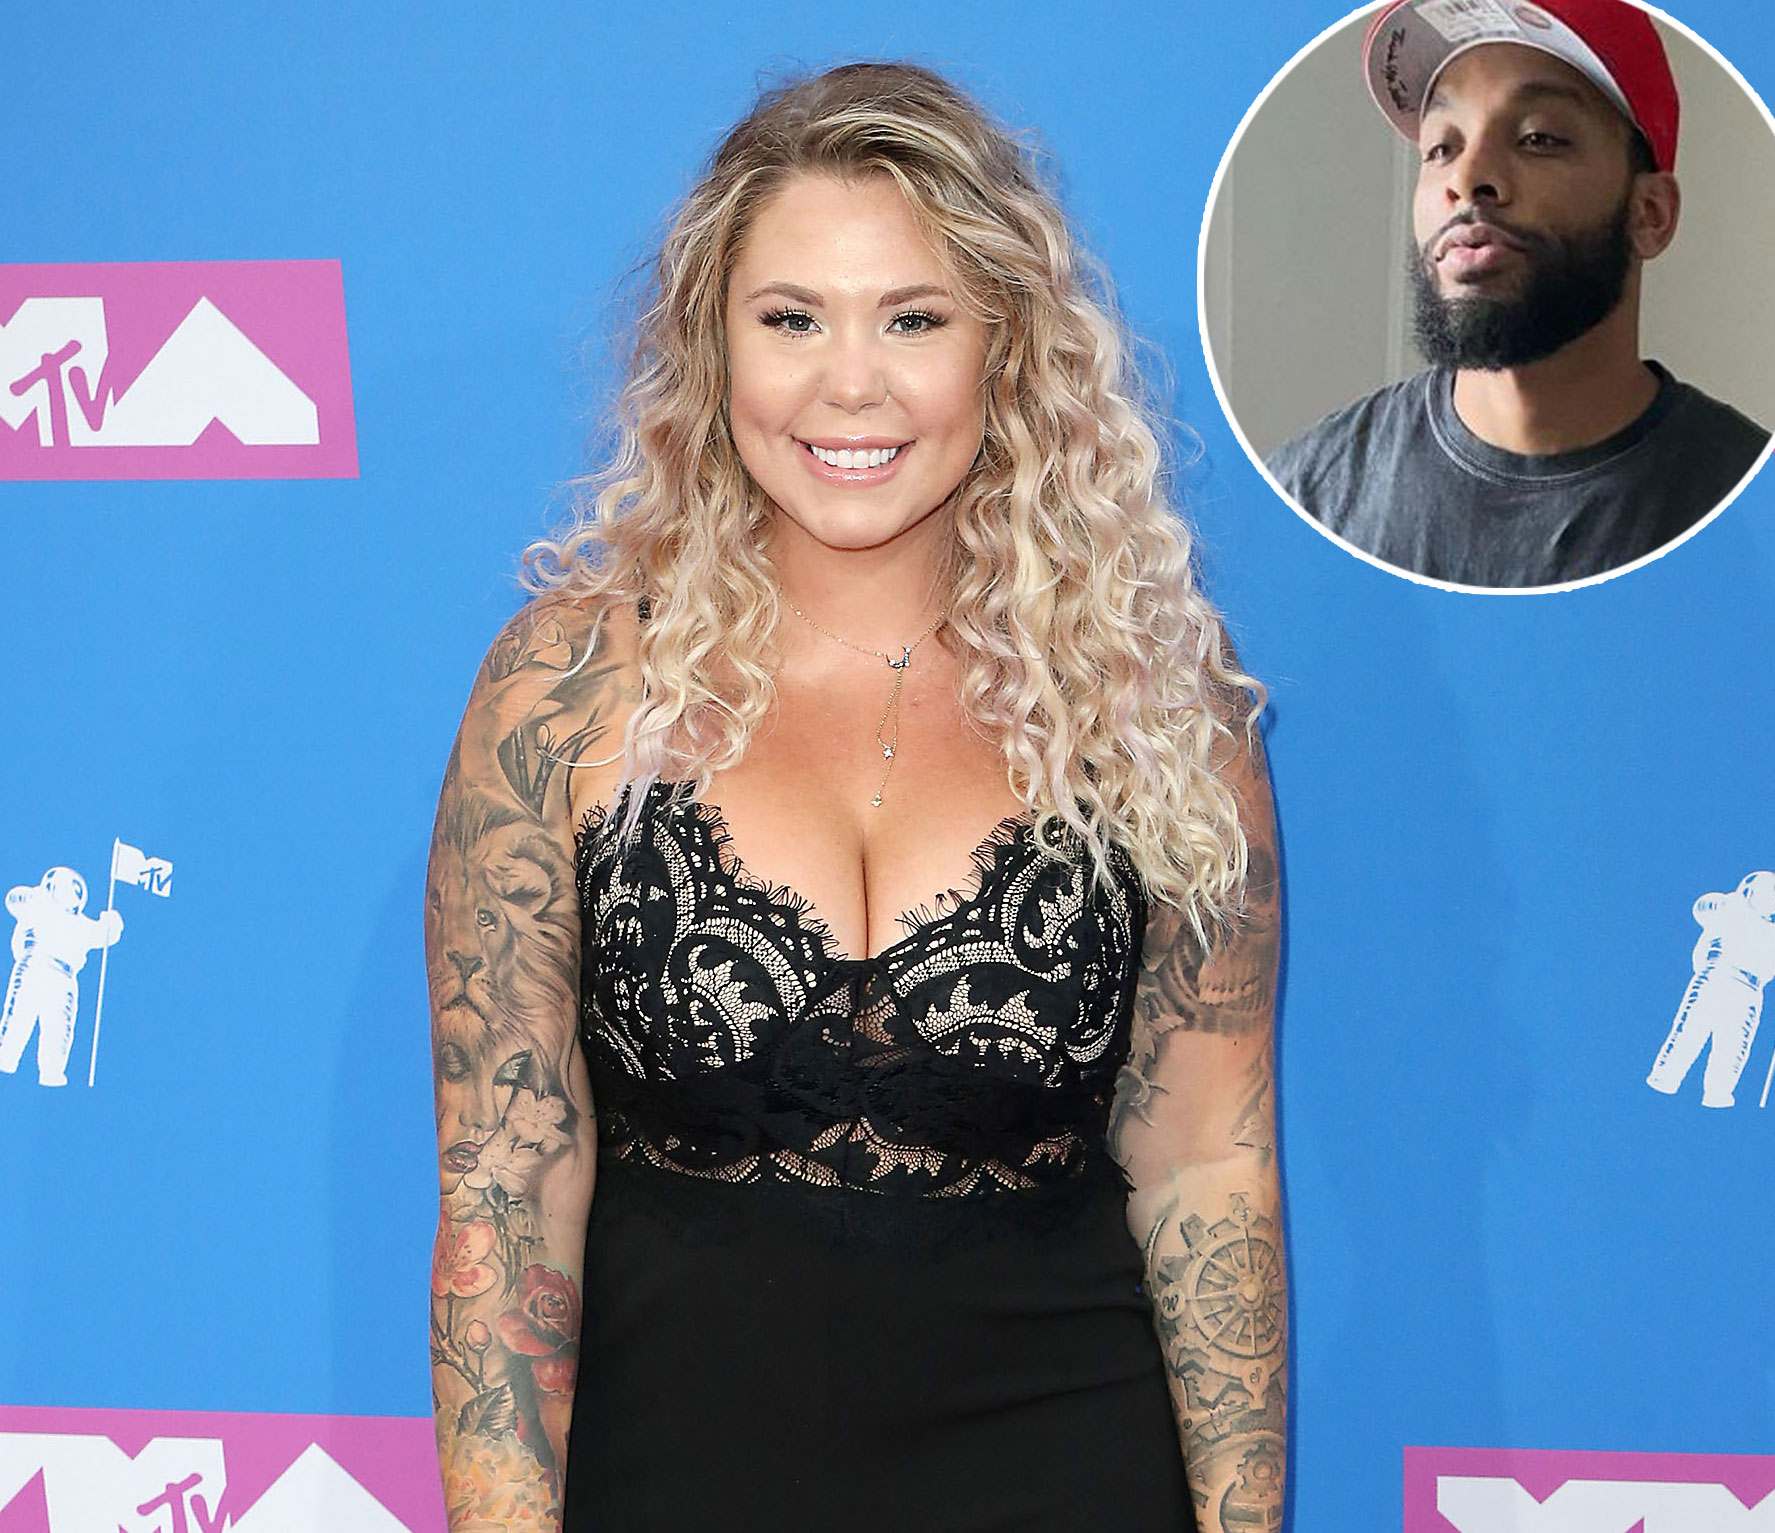 Teen Mom Kailyn Lowry Responds to Rumors She's Engaged to Chris Lopez I Would Never Ever Accept a Ring From Him